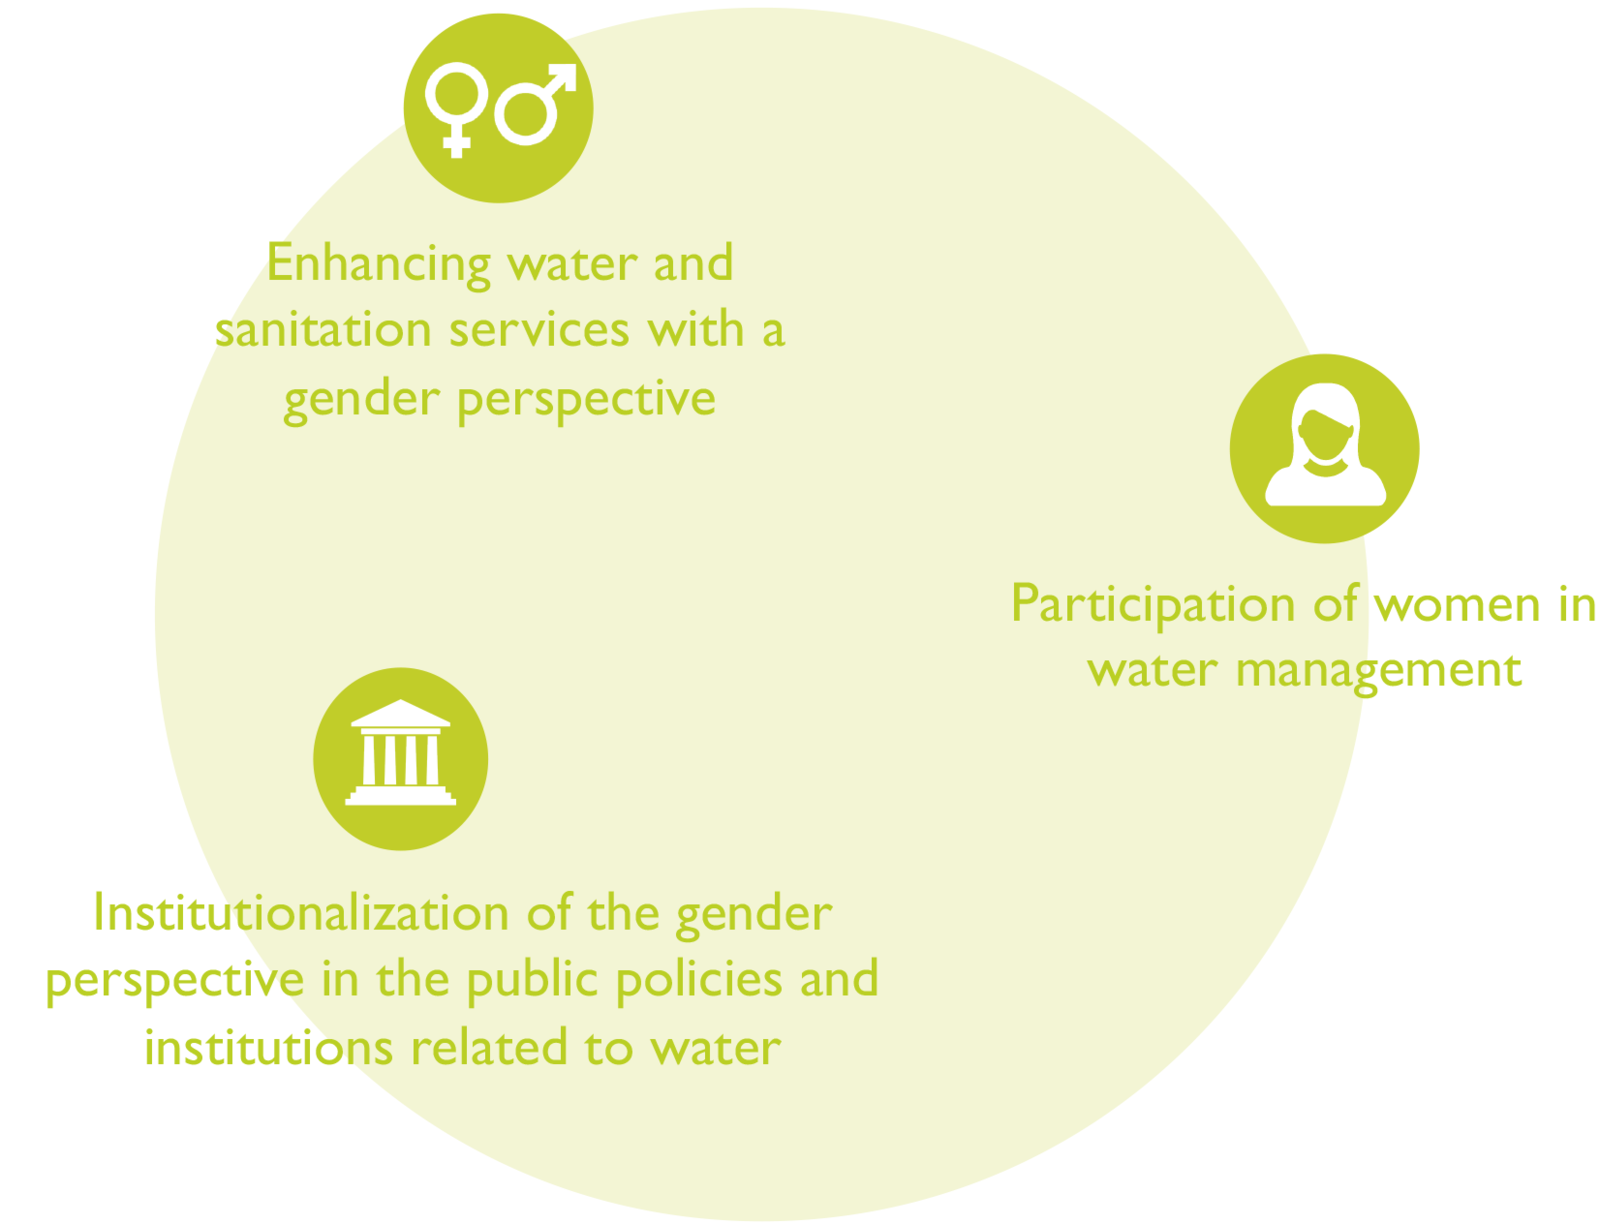 Water and sanitation management with a gender perspective in